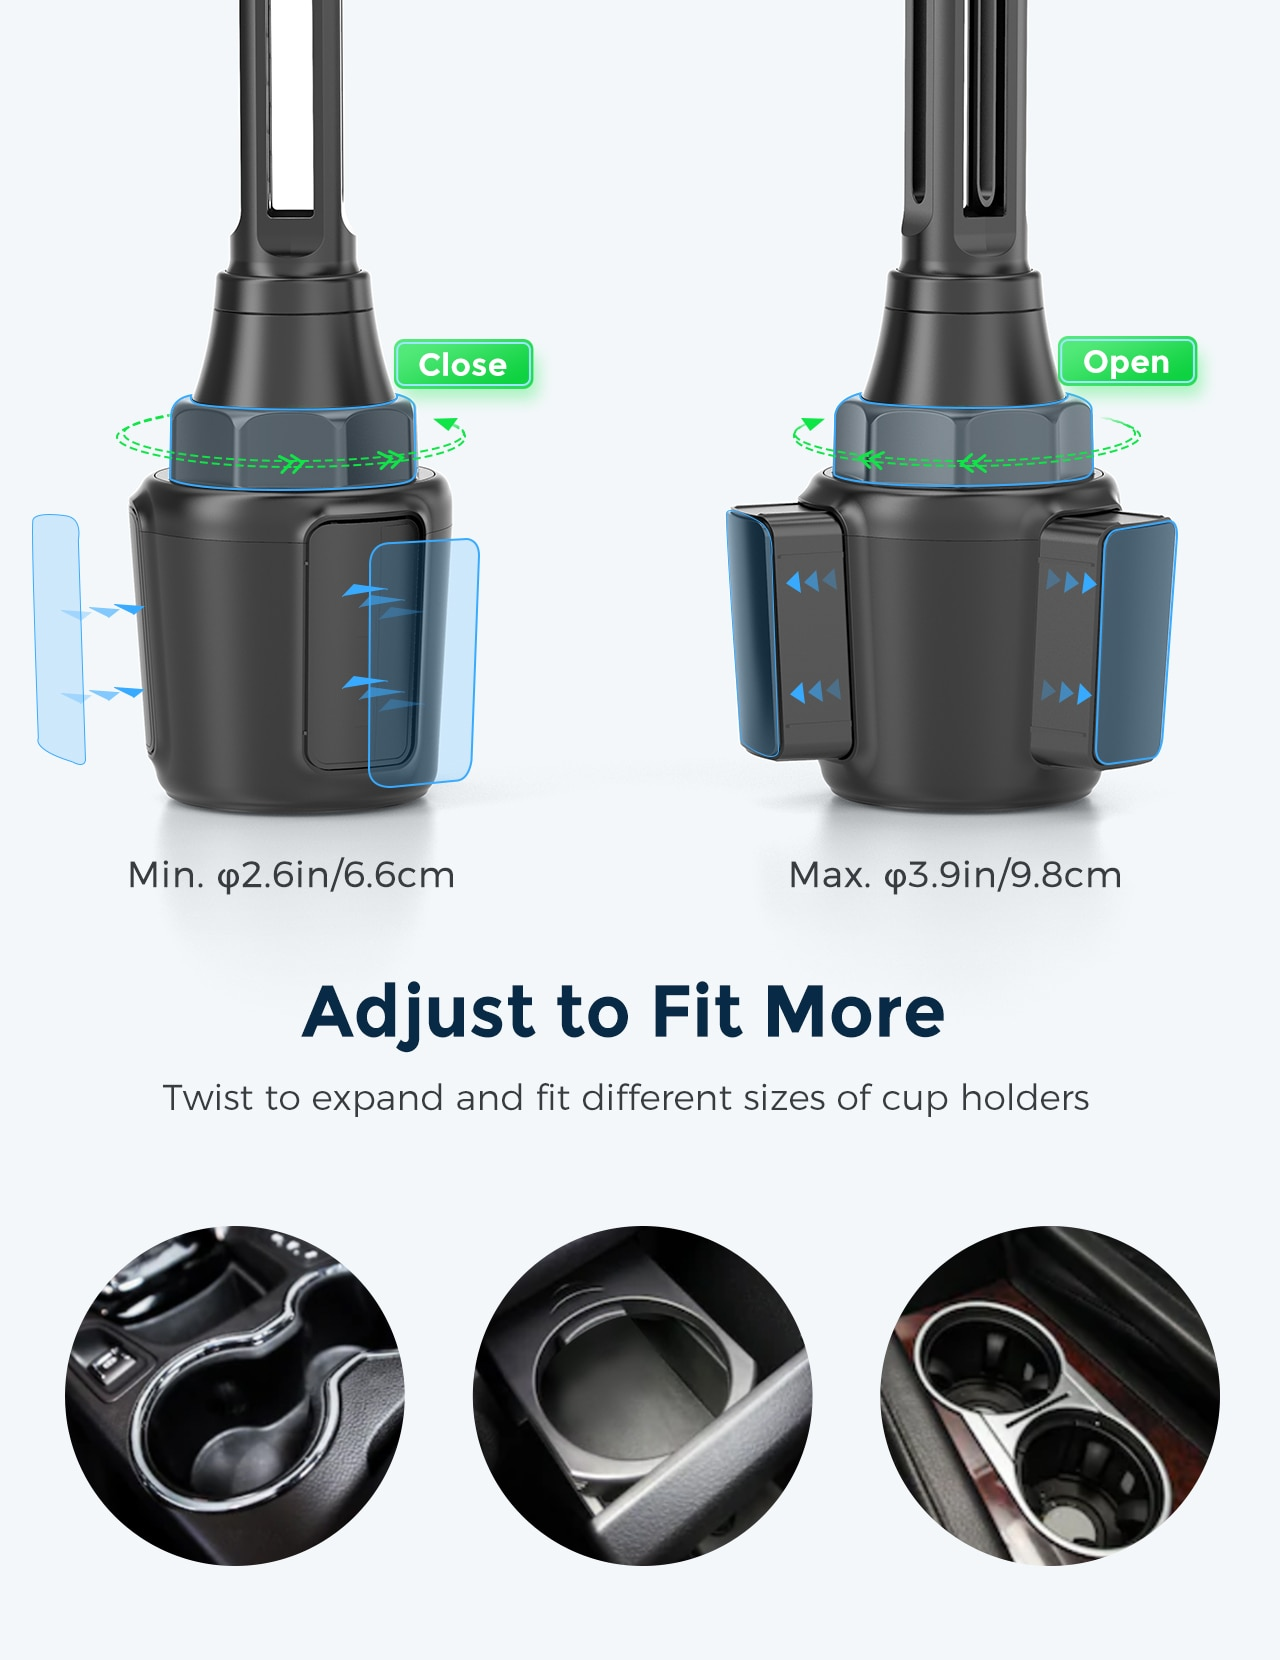 H3894a237c30a40adbb62d99a5b65e08eE - MPOW CA160 Wireless Car Charger 15W Auto-clamping Qi Fast Charging Car Mount with Built-in Battery Cup Holder Vent Phone Holder